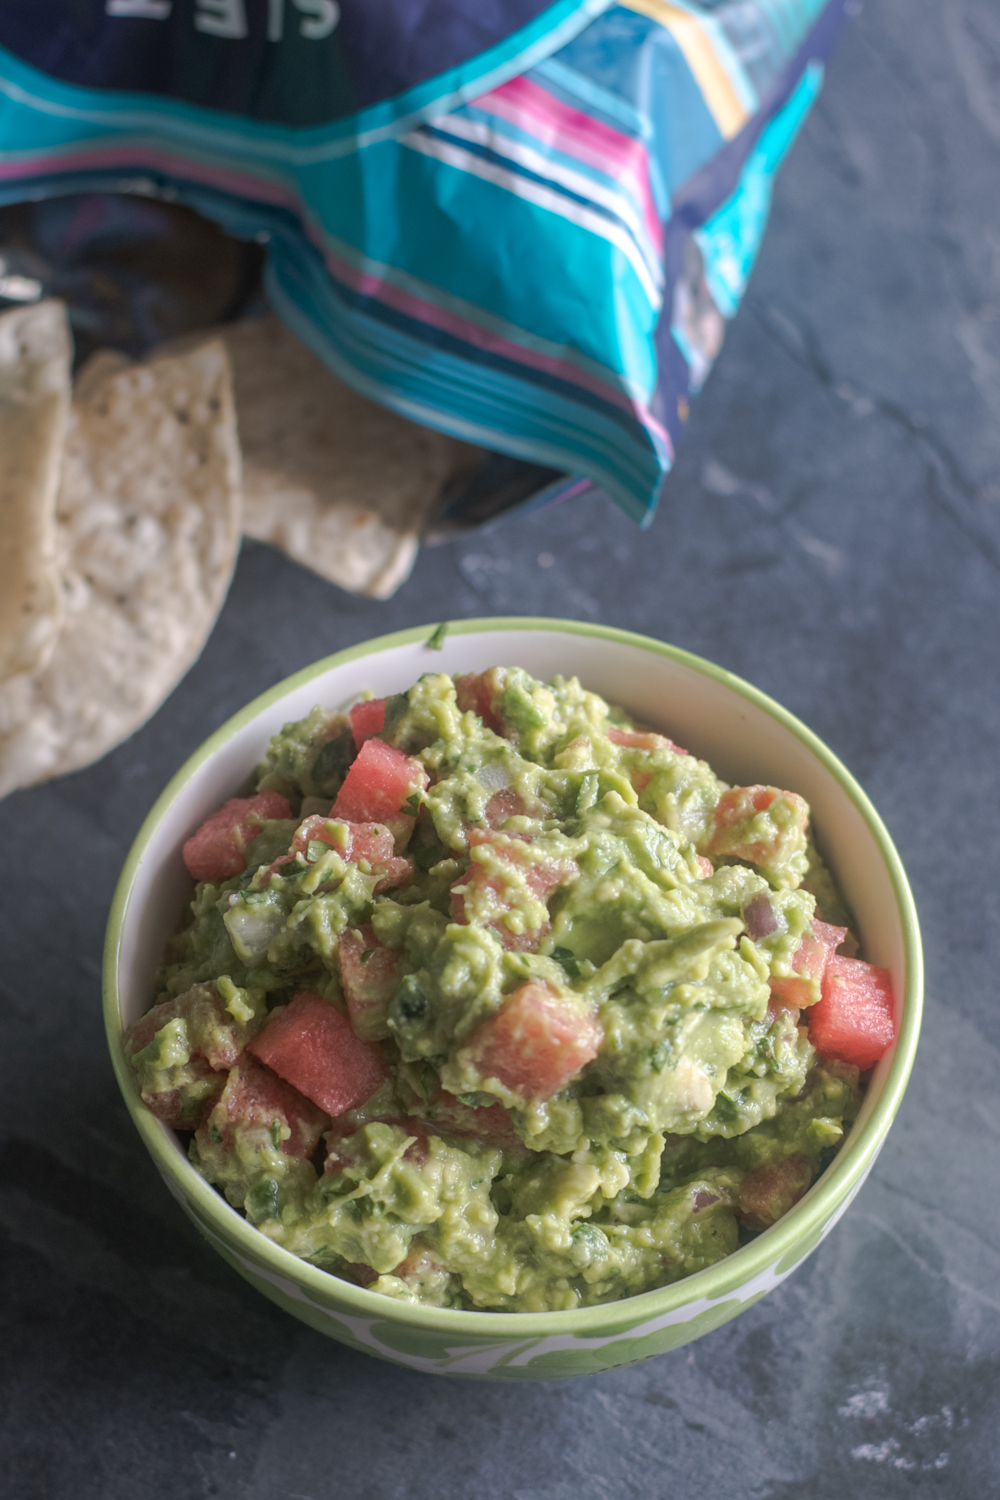 The combination of watermelon and avocado is so good! This guacamole is light, refreshing and delicious!